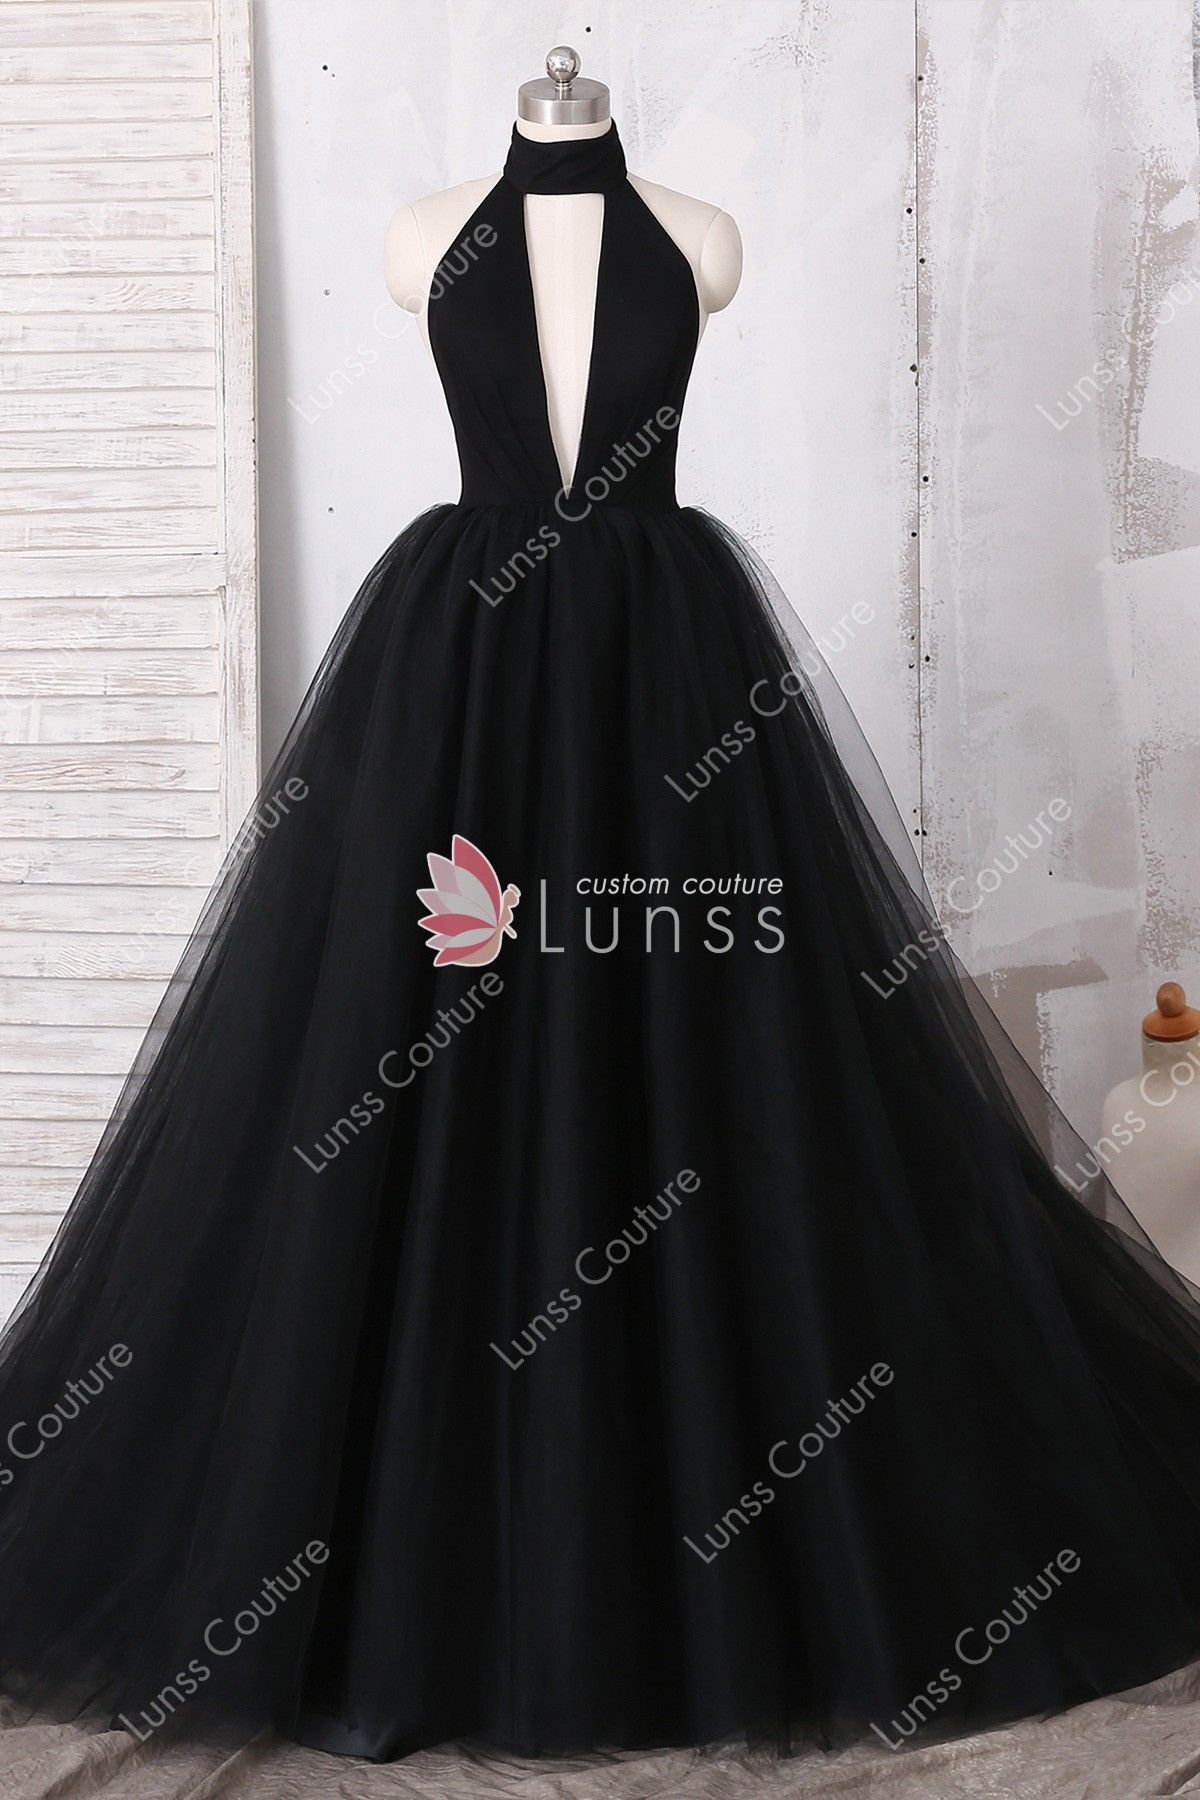 6d7edc7a107 This gorgeous black tulle puffy long prom dress features timeless ball gown  silhouette